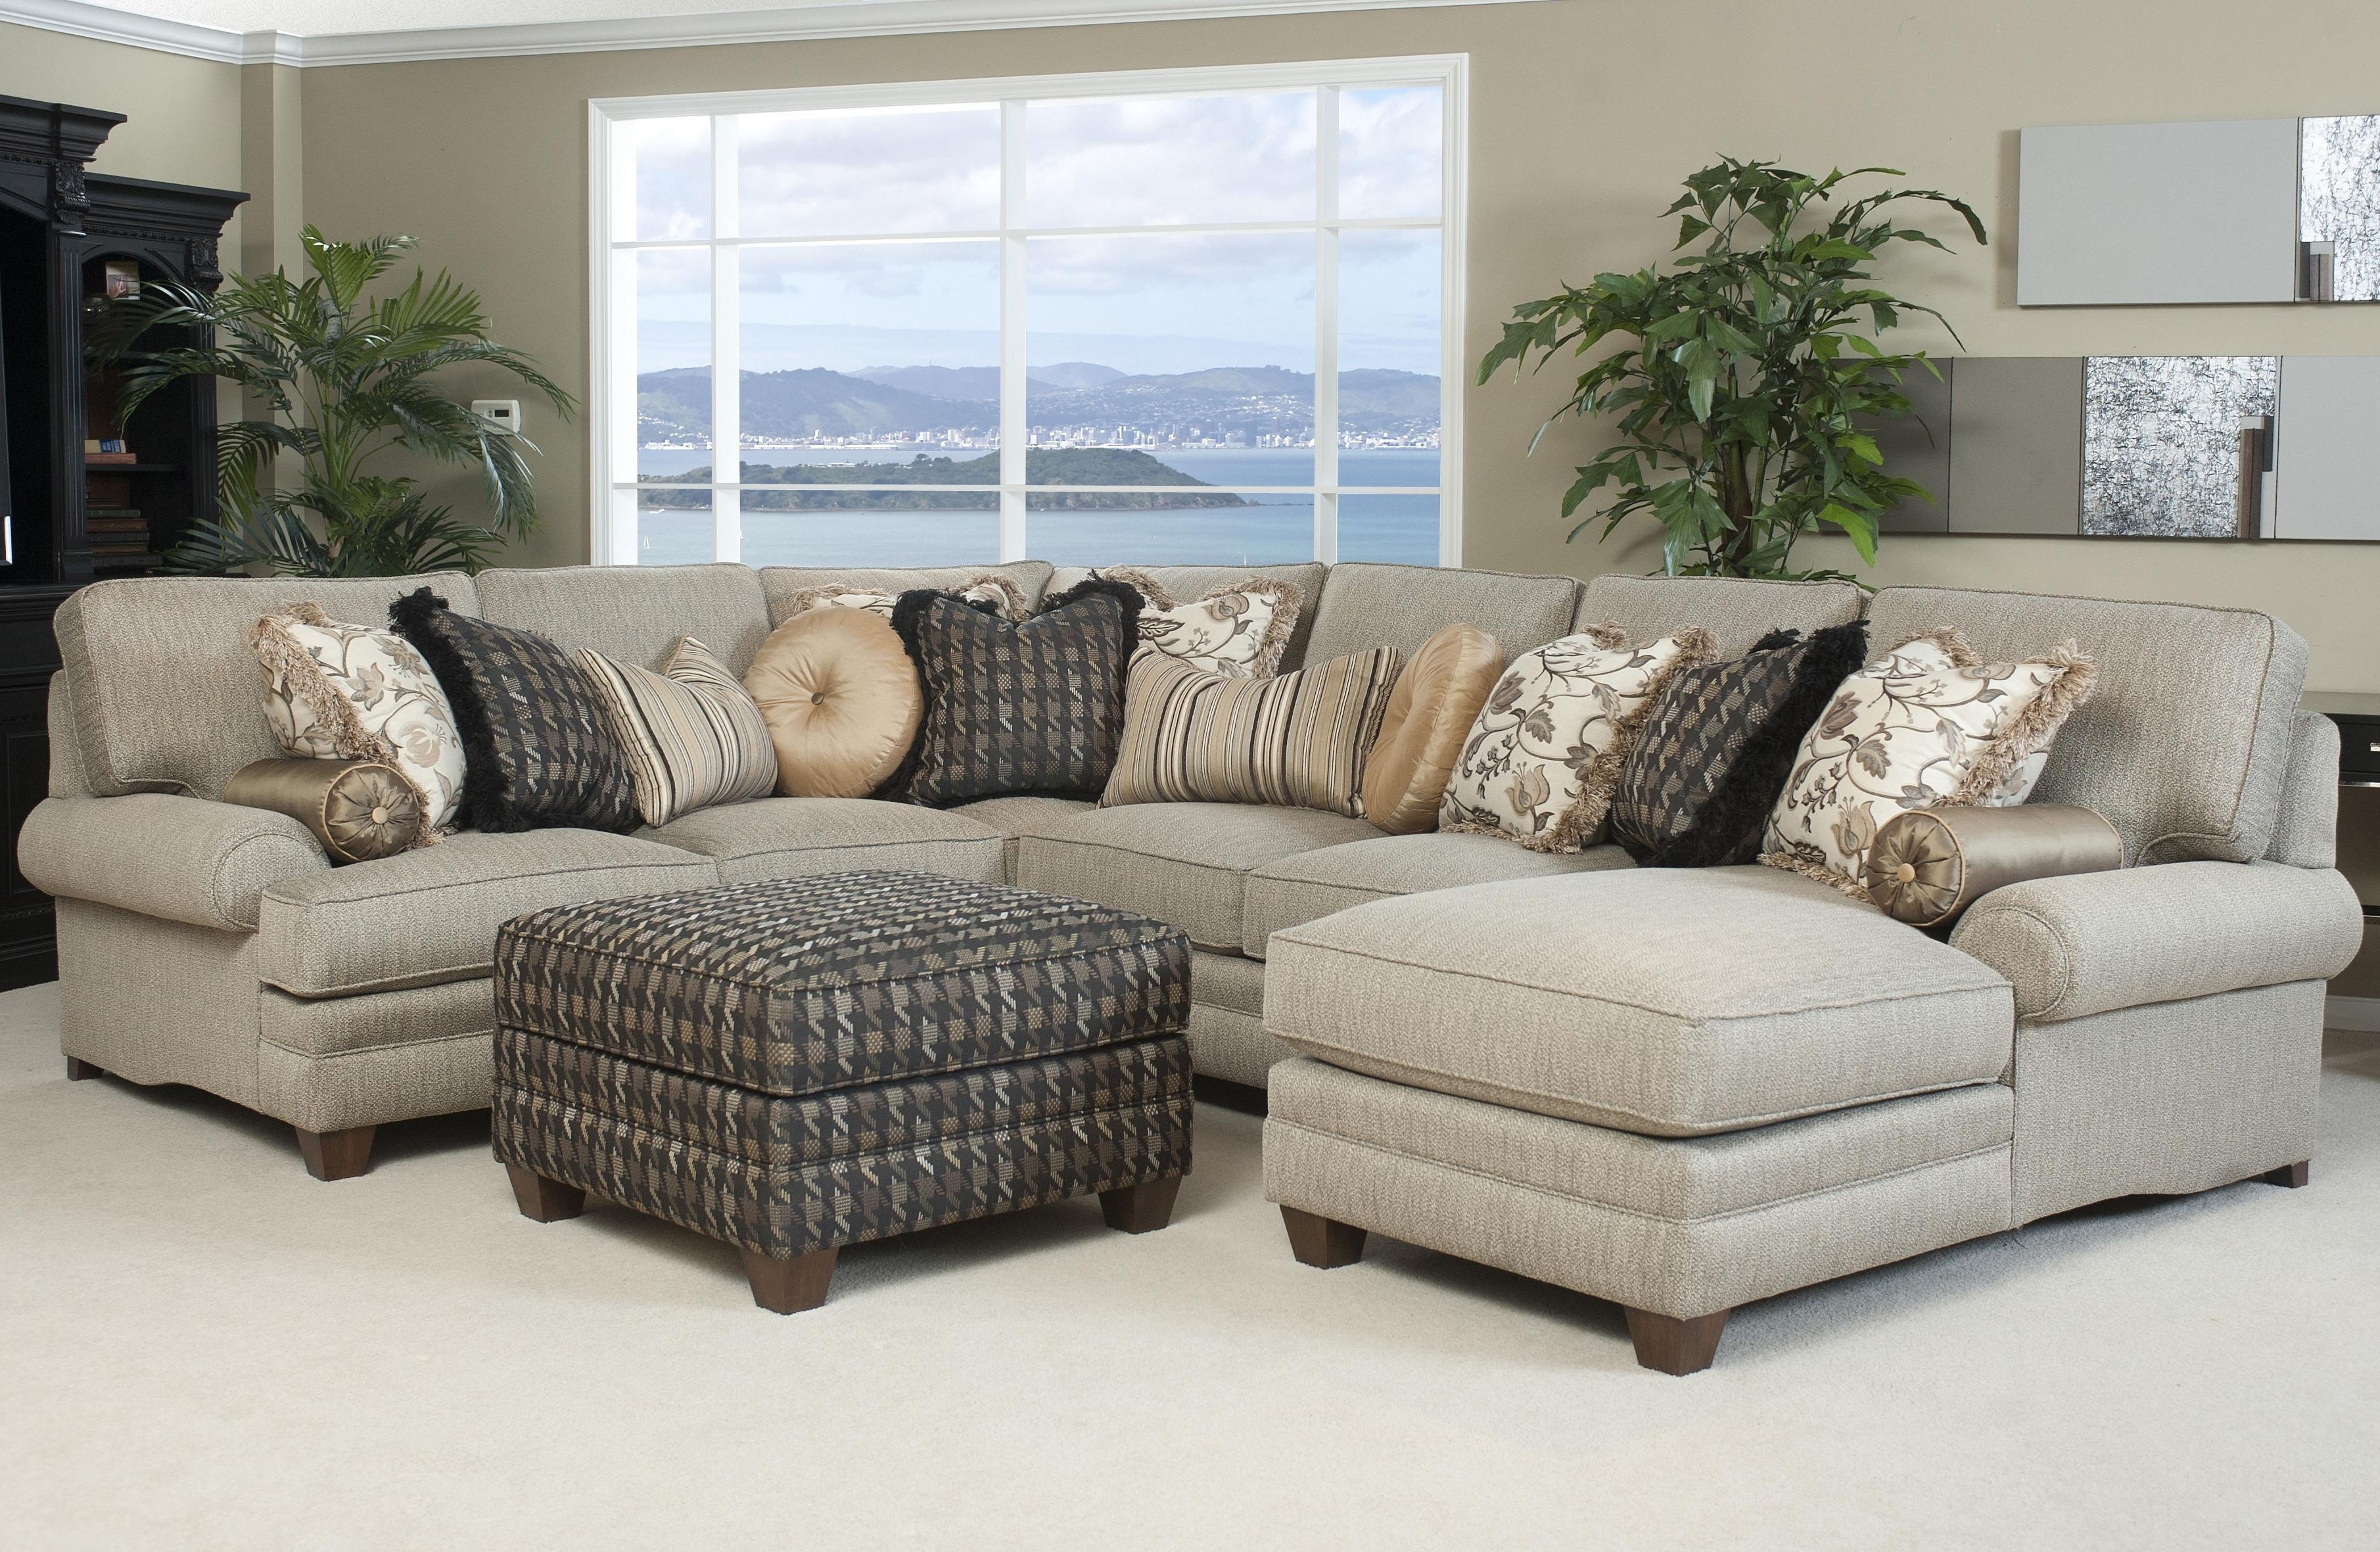 Top 71 Peerless Affordable Sectional Sofas Cheapest Sofa Discount With Regard To Well Known Cheap Chaise Sofas (View 9 of 15)